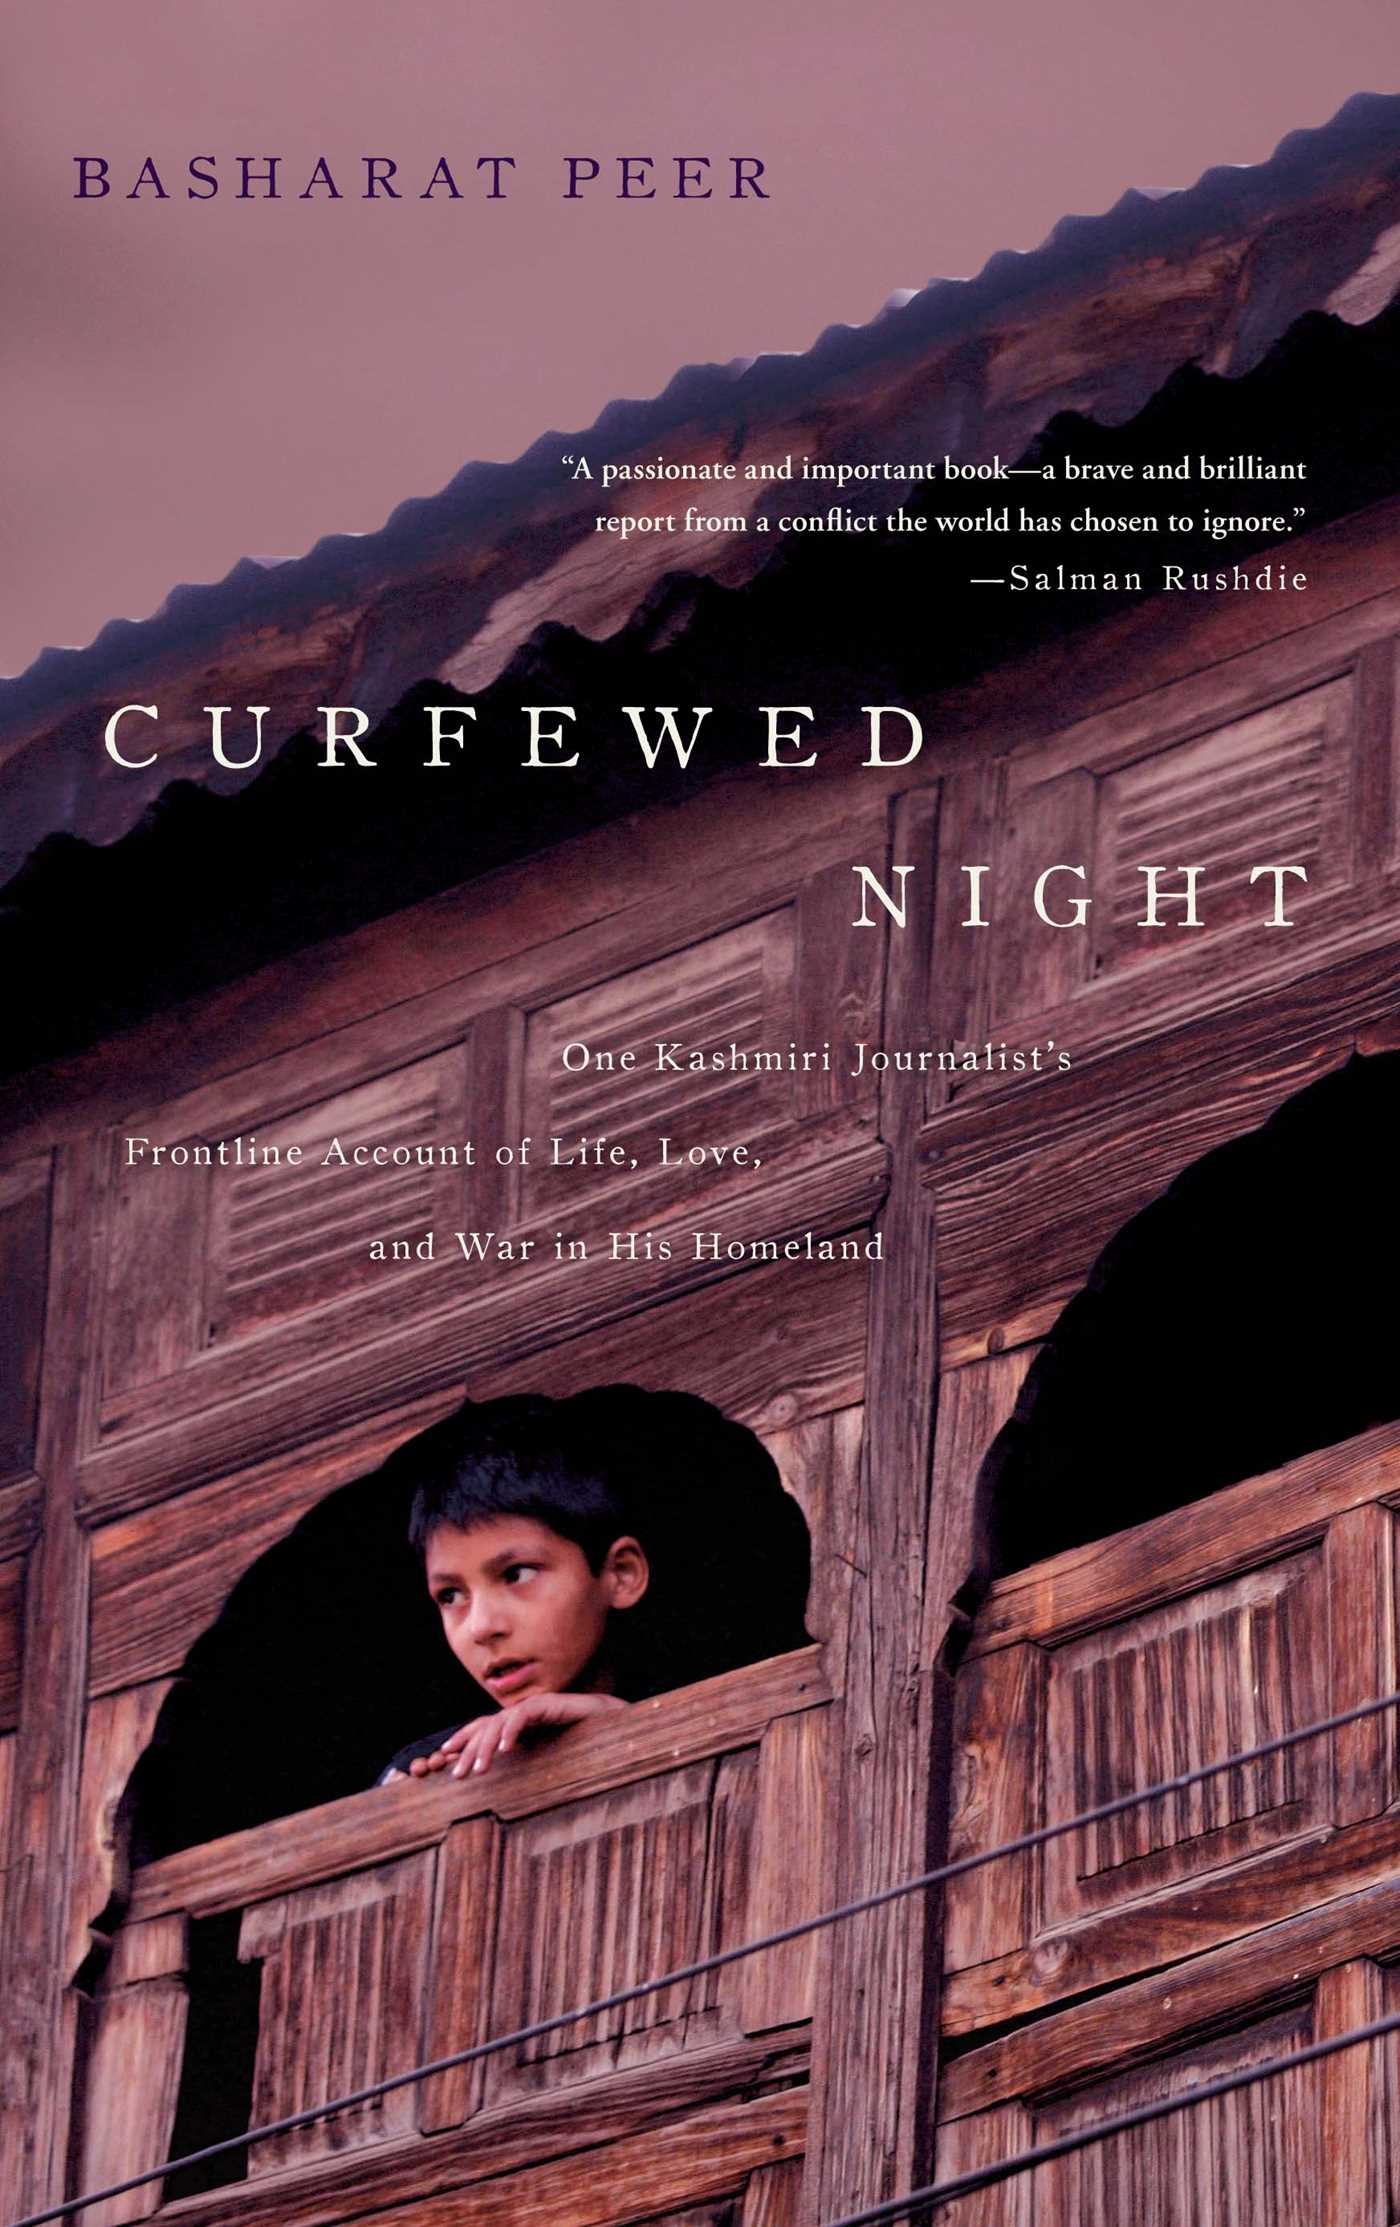 Curfewed-night-9781439109113_hr